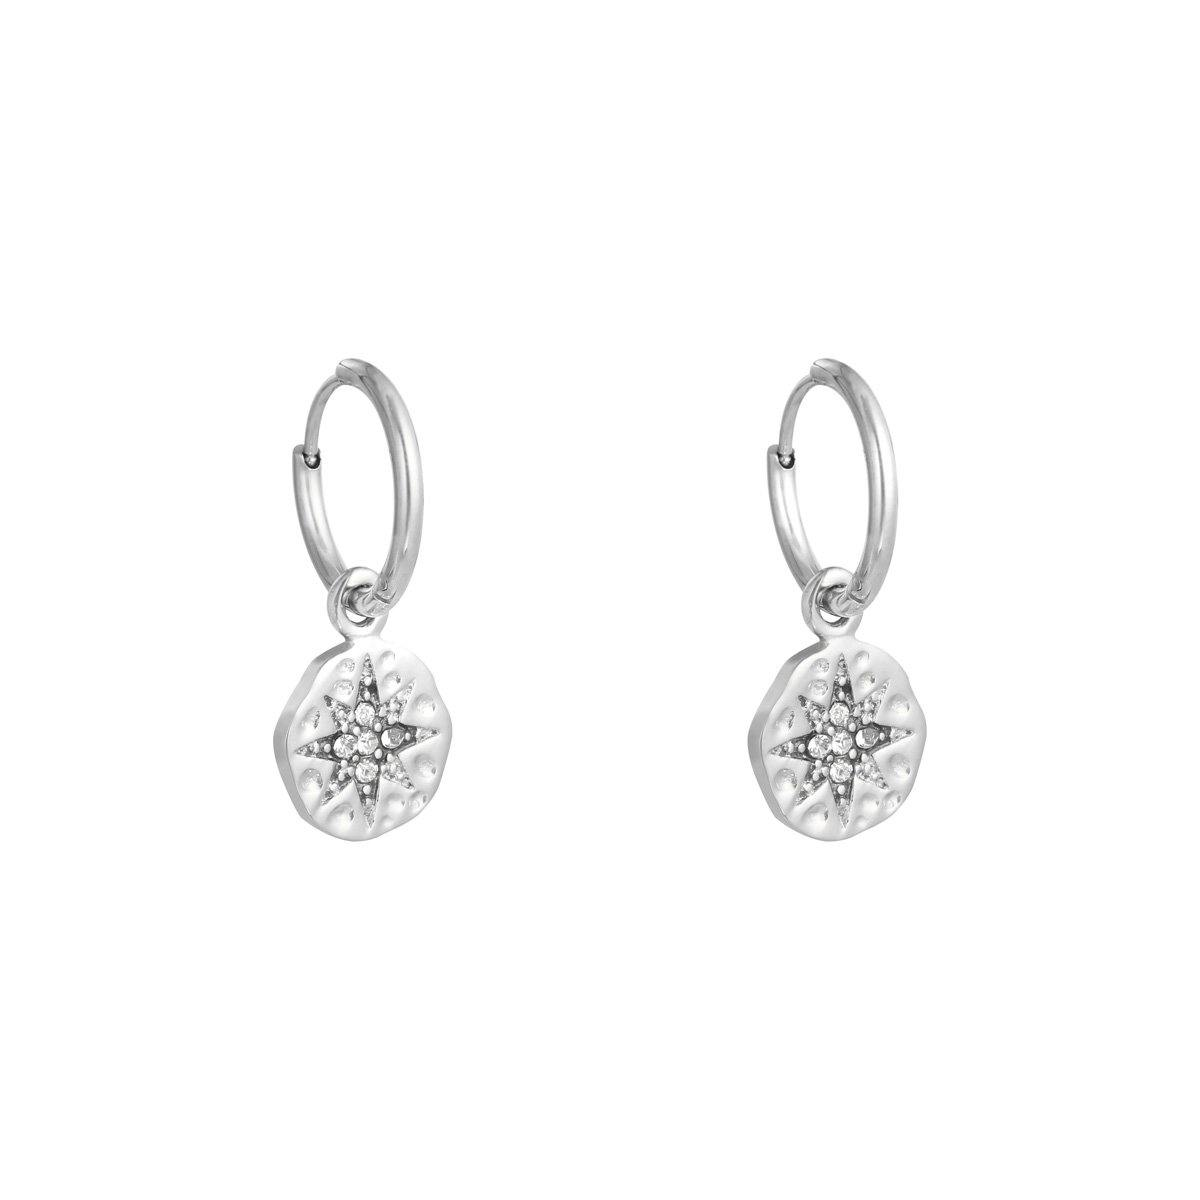 STELLA TWINKLE EARRINGS - ZARIA.SE